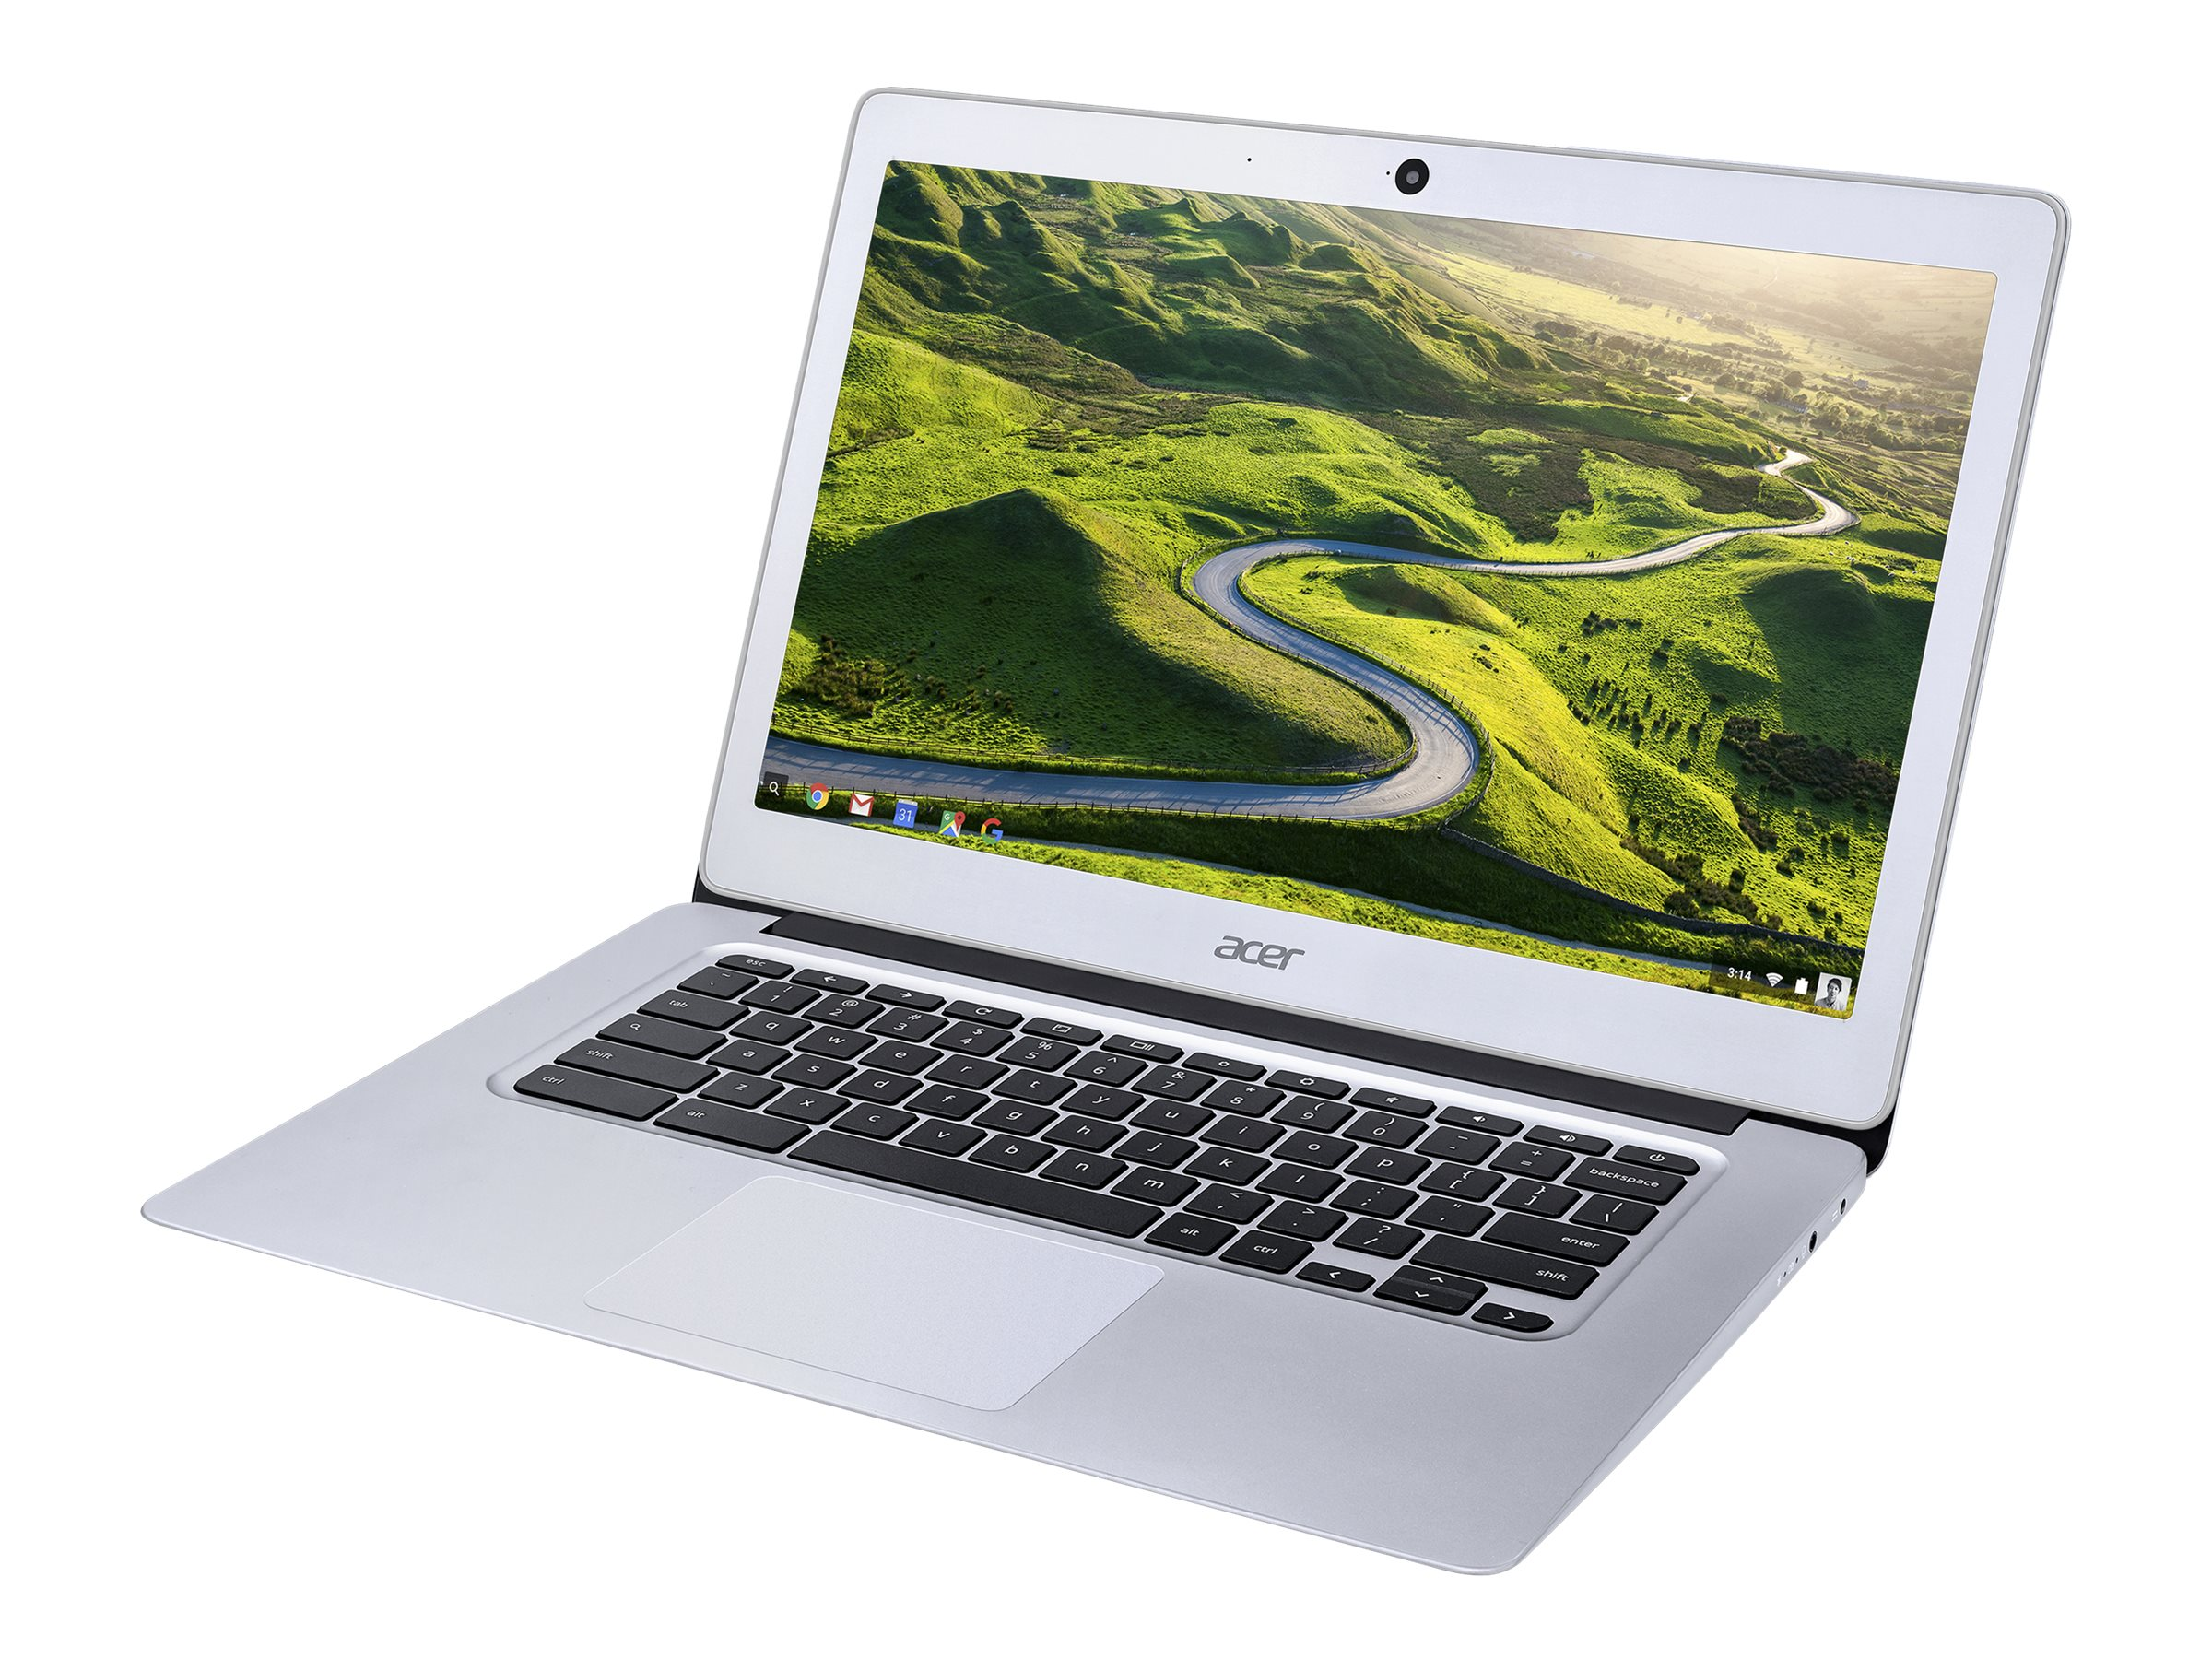 Acer Chromebook 14 CB3-431-C6ZB 1.6GHz Celeron 14in display, NX.GJEAA.002